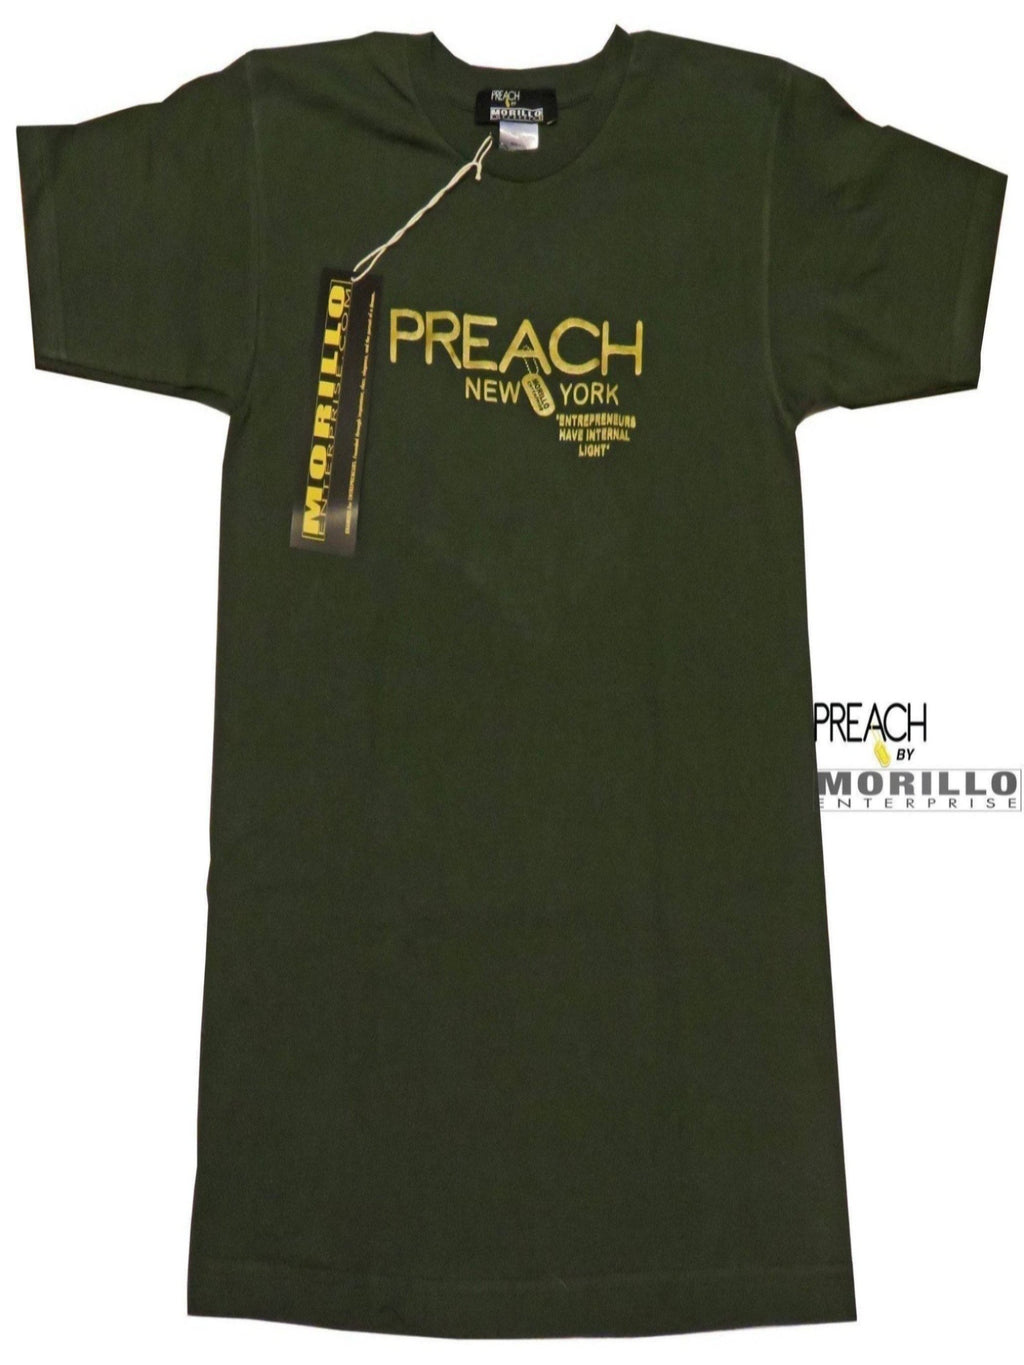 PREACH NEW YORK Signature T-SHIRT T-Shirts, Crewneck - MORILLO ENTERPRISE